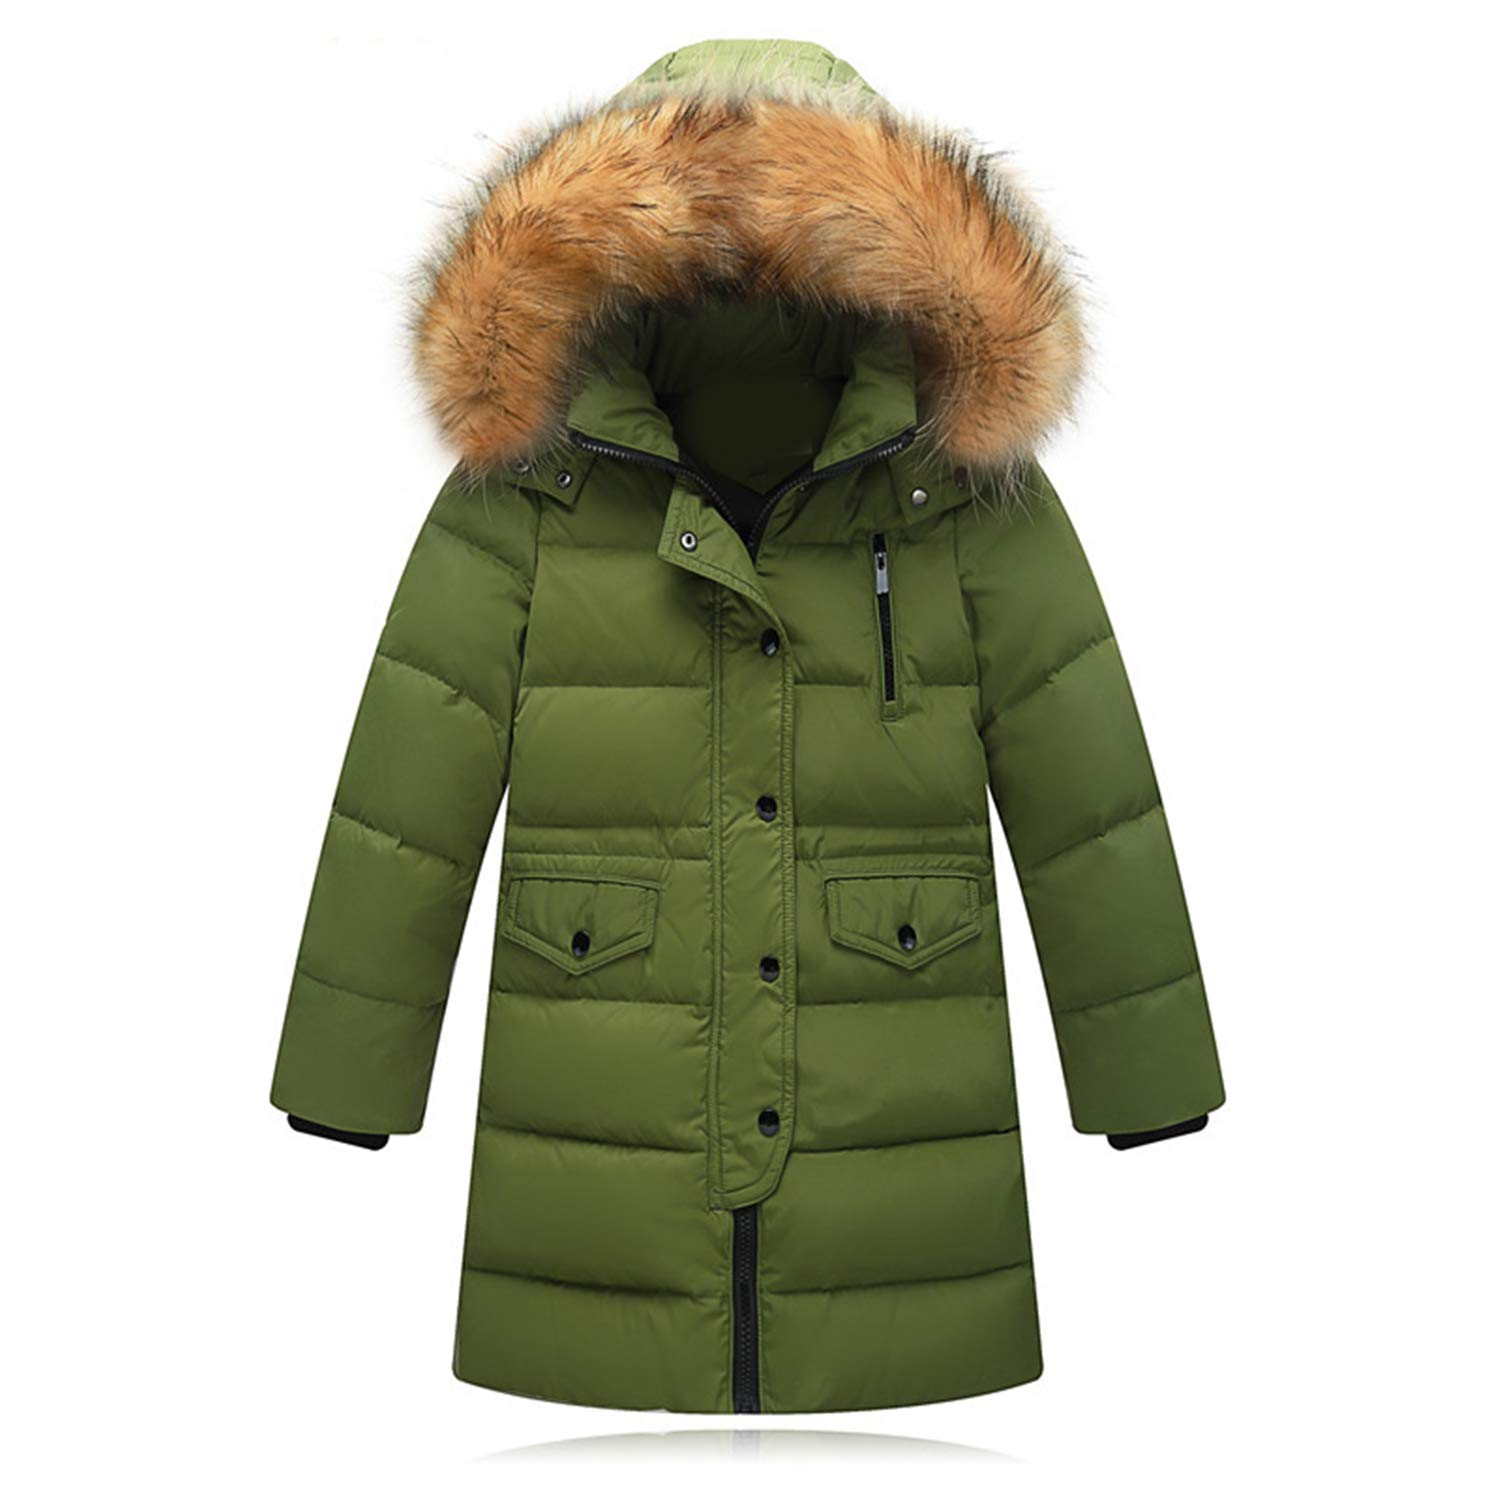 b3e6b6522 Functionaryb Children Winter Duck Down Jackets Girls Clothing ...